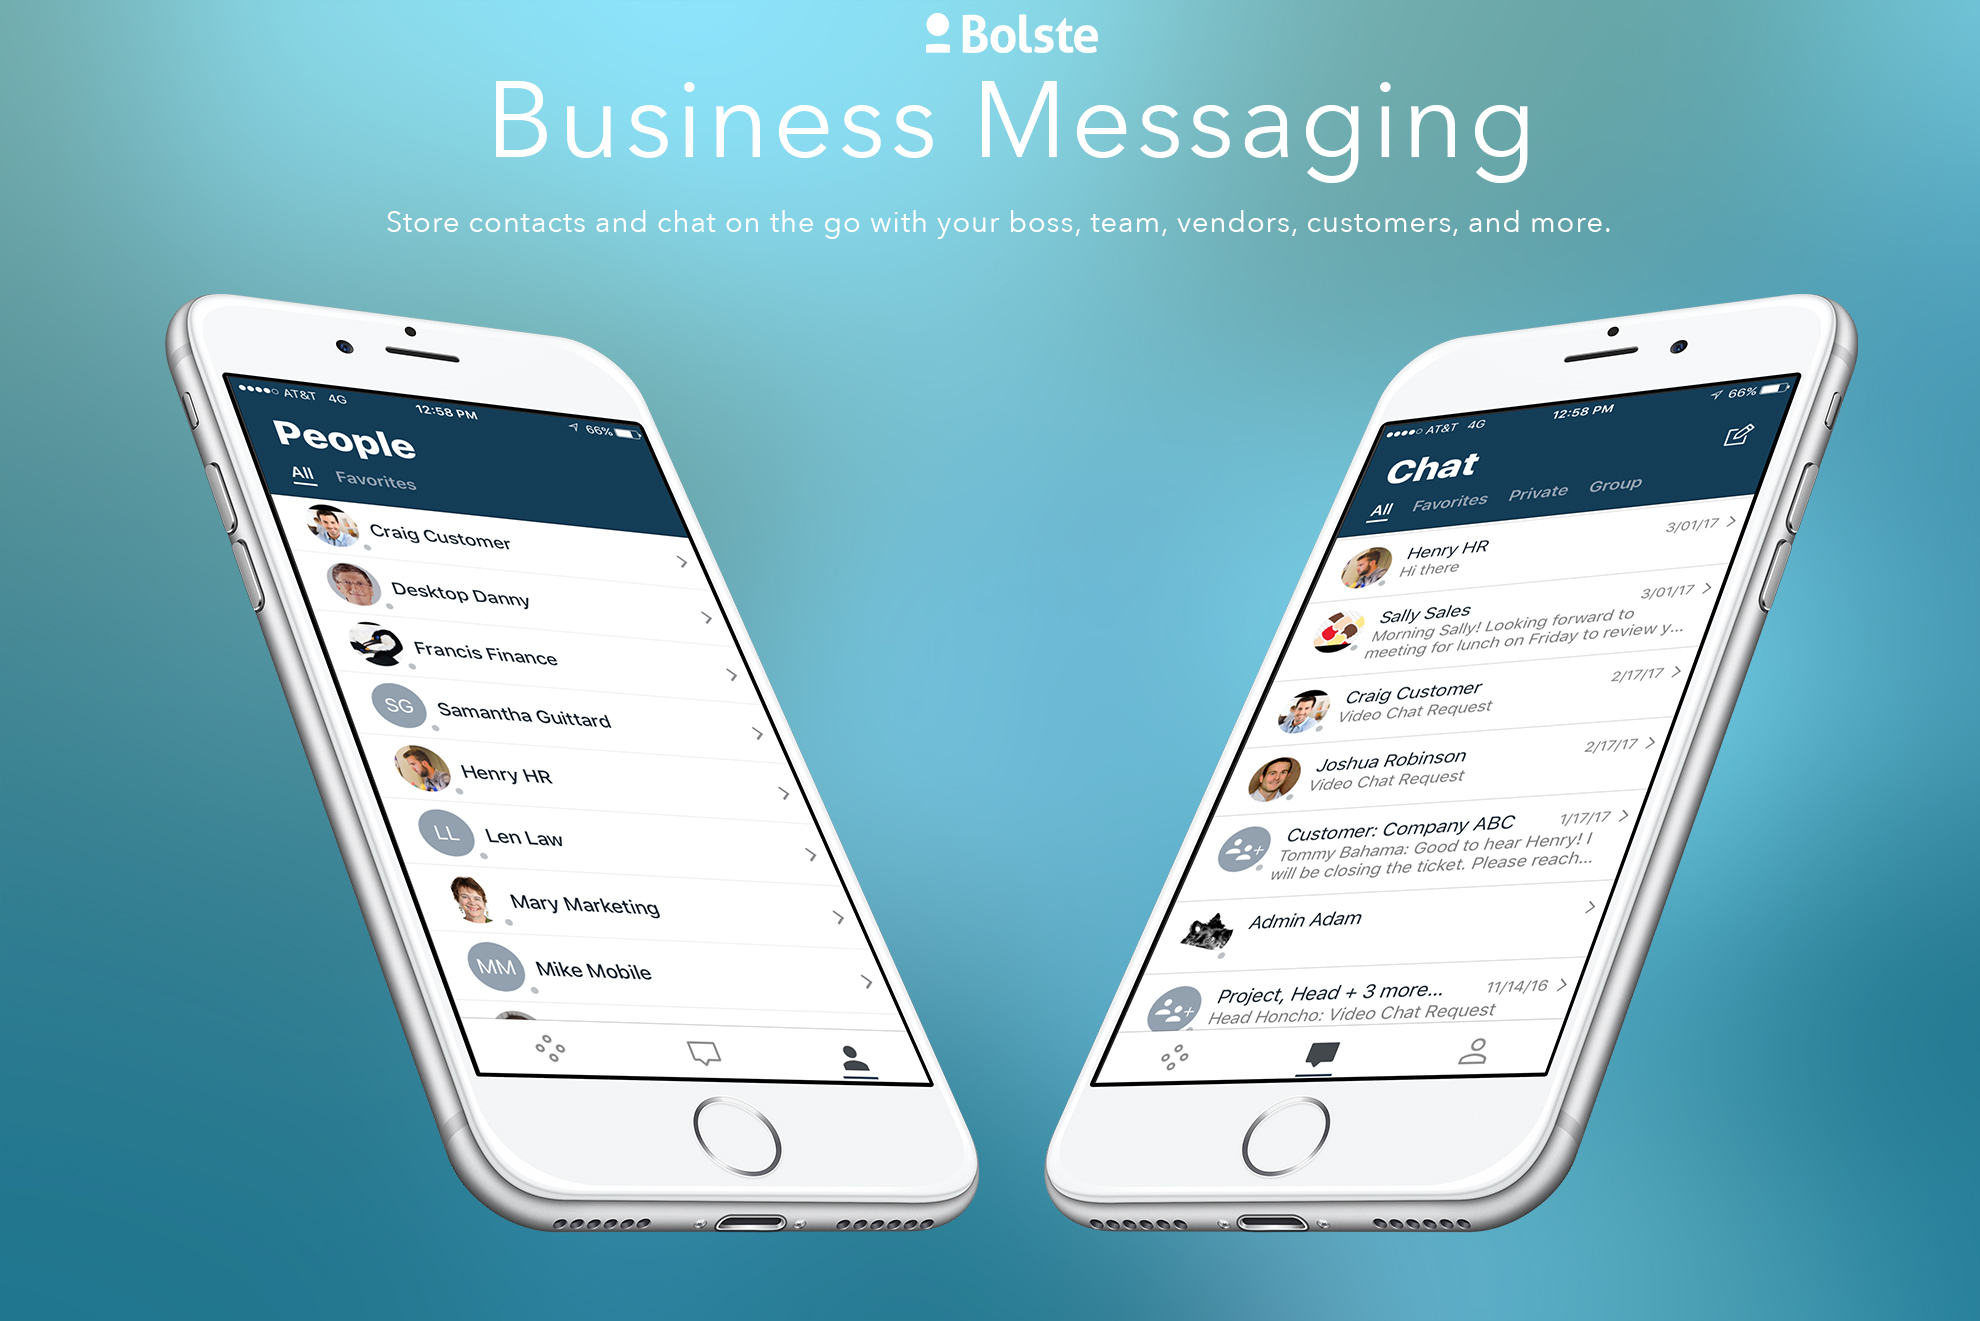 Bolste Demo - Business Messaging